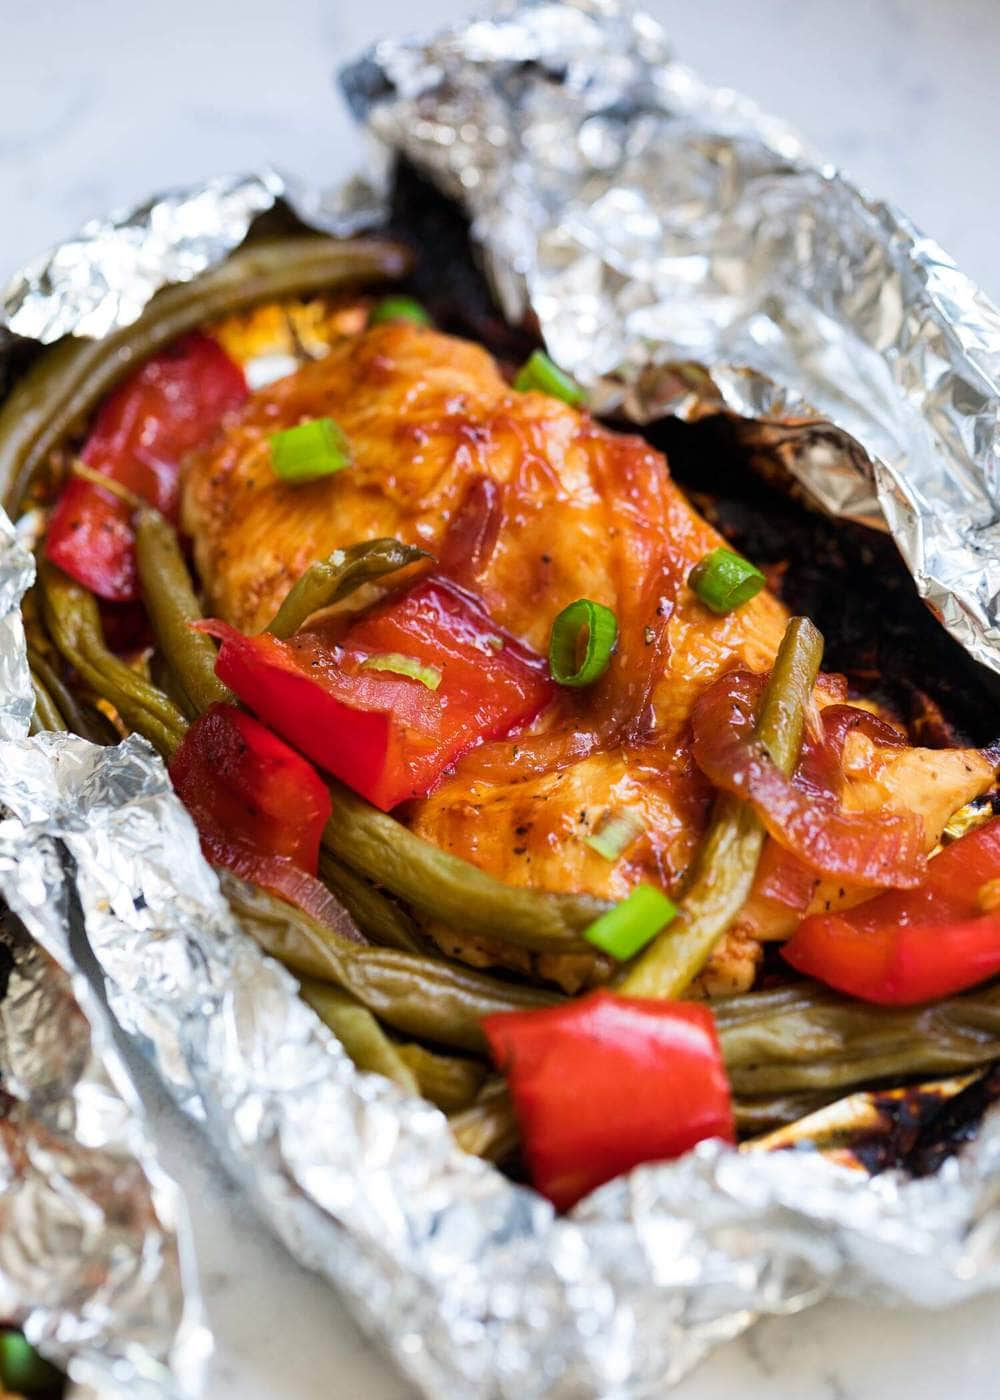 BBQ chicken foil package with vegetables